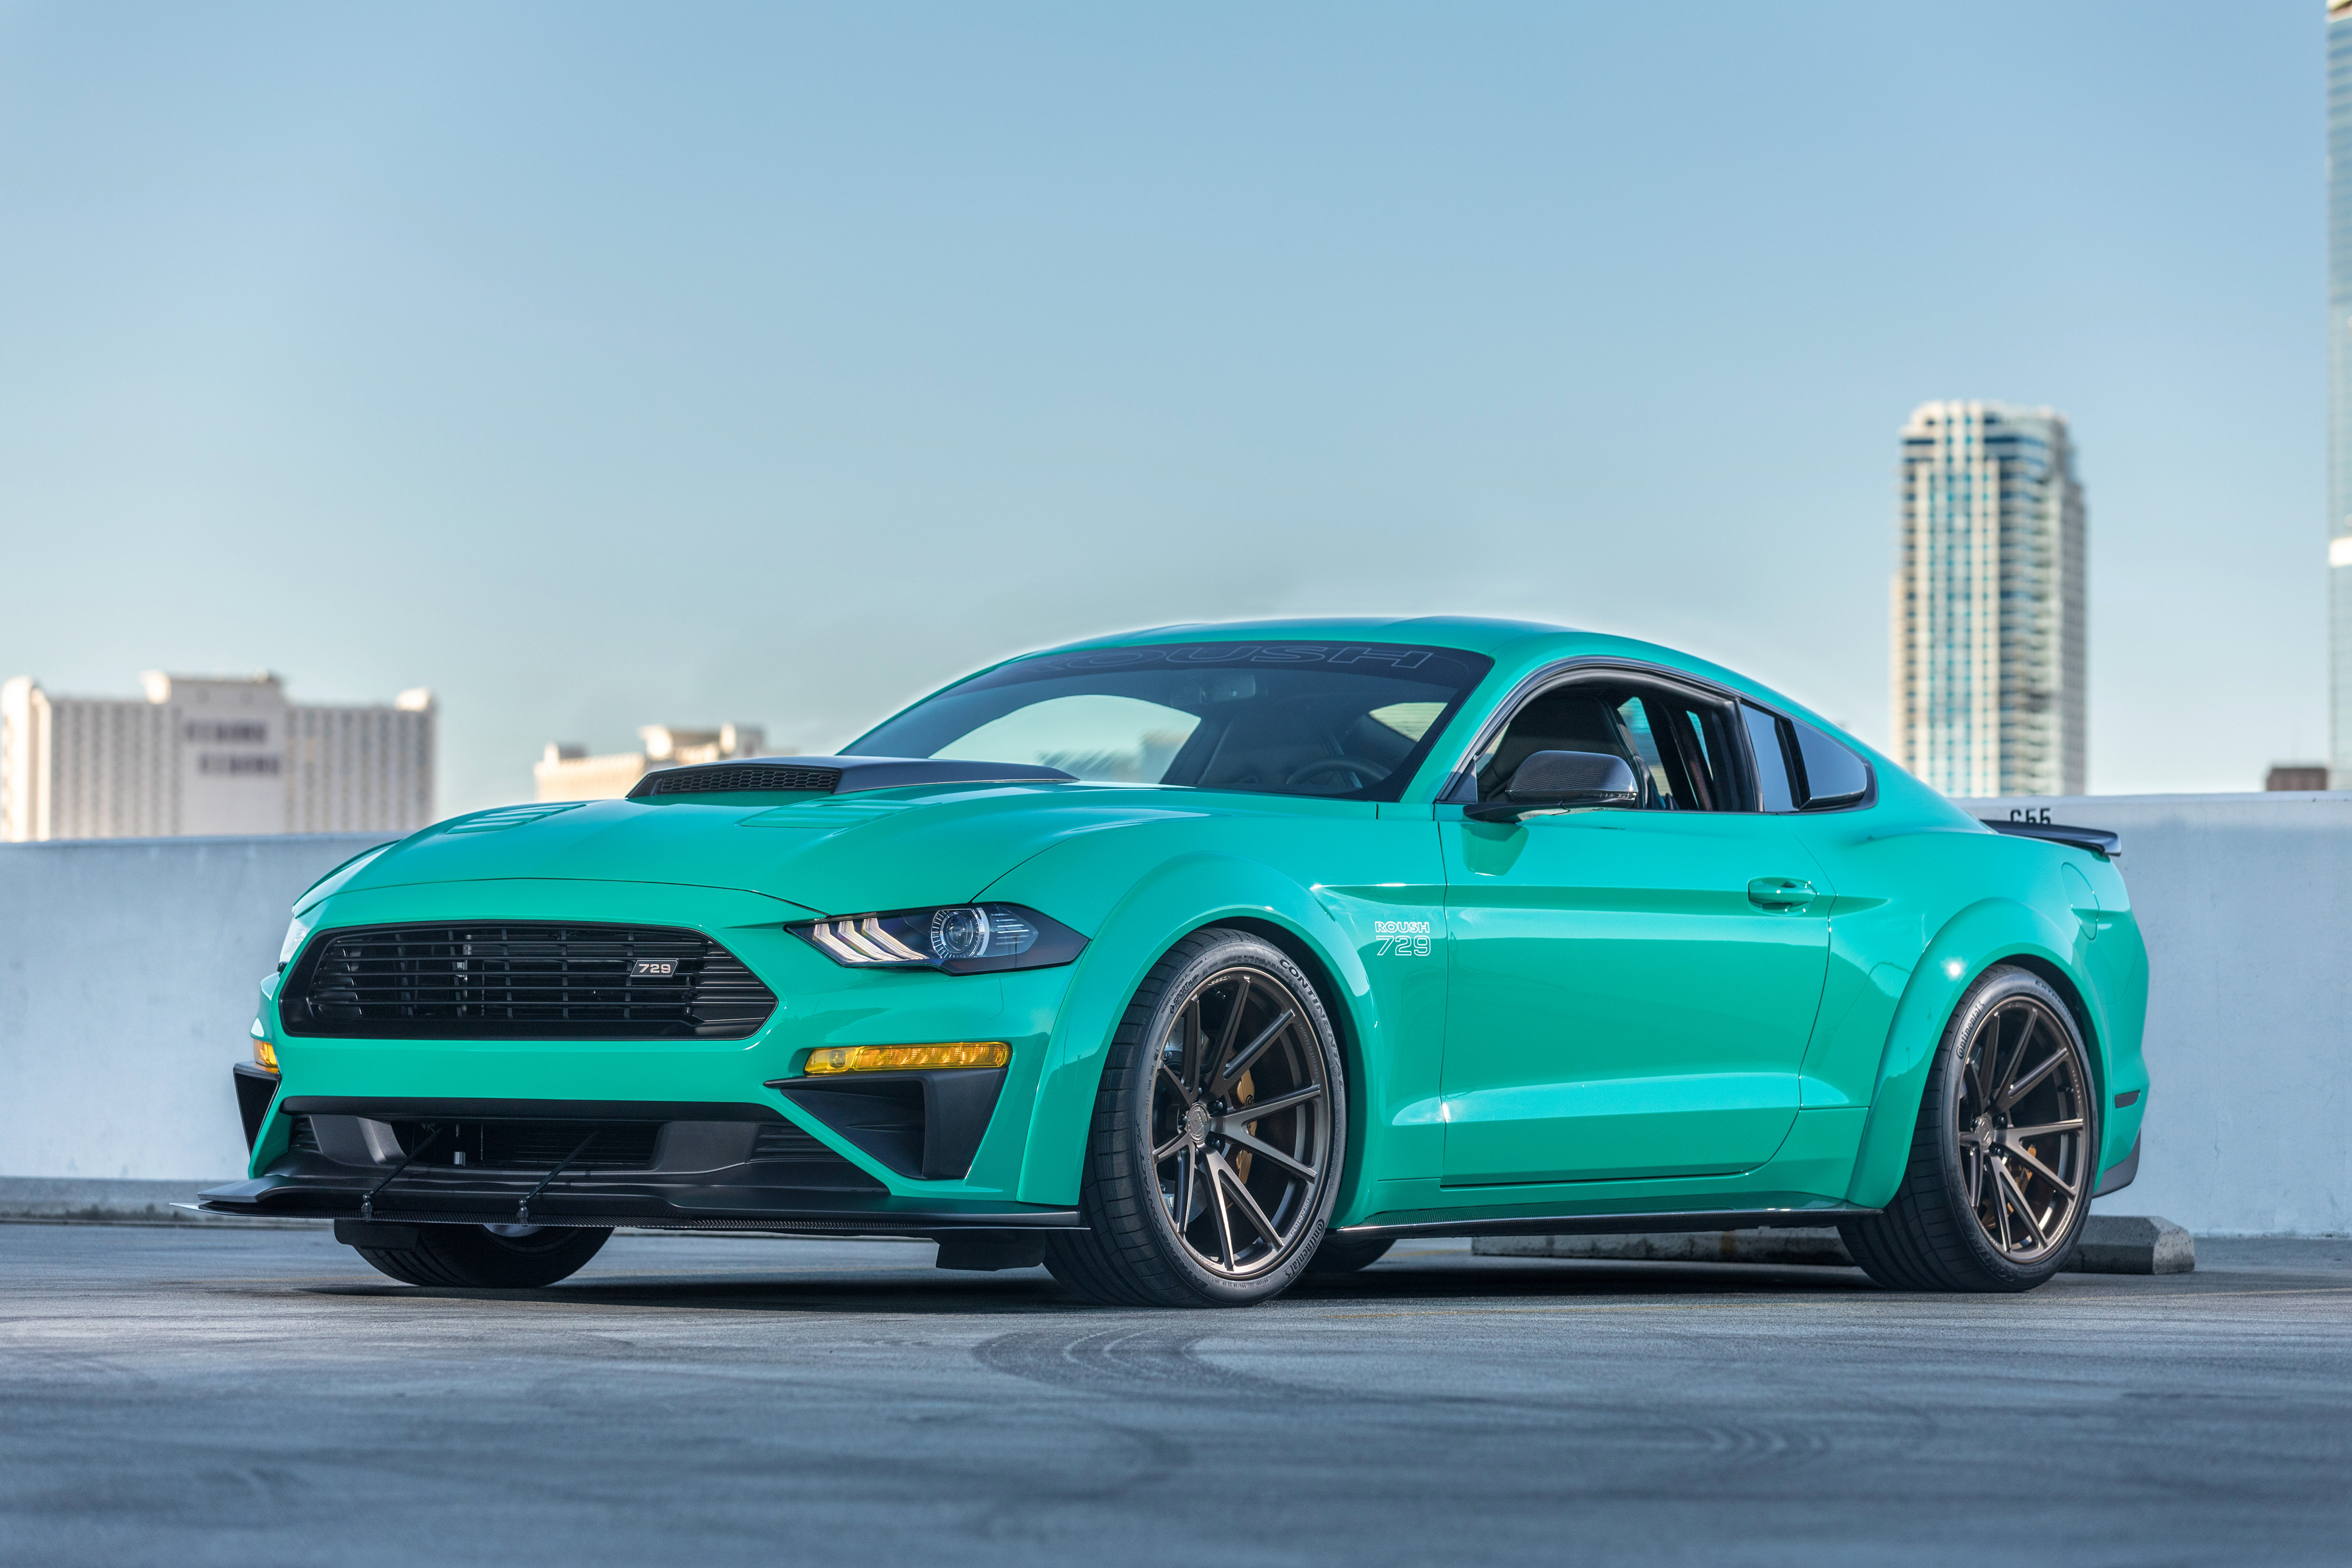 Ford Mustang 2018, HD Cars, 4k Wallpapers, Images ...